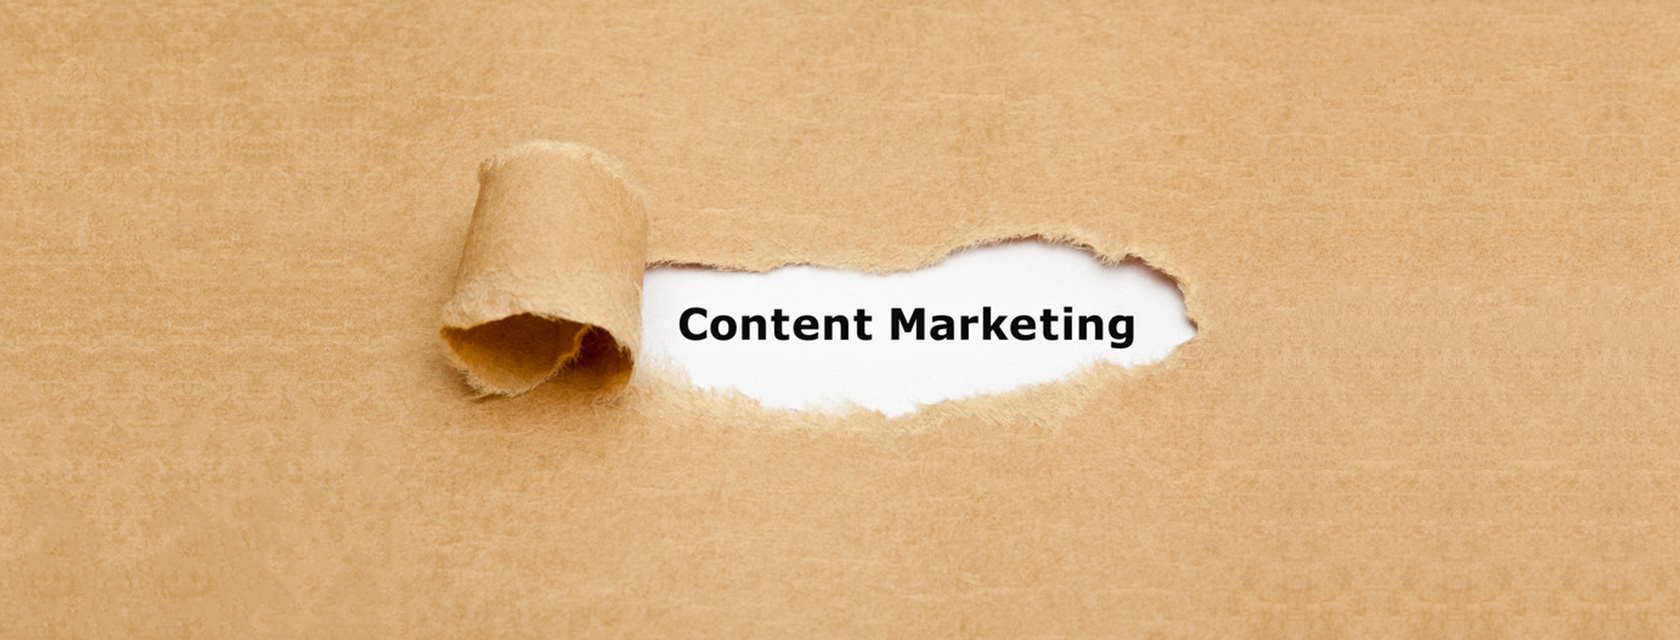 How content marketing can help your ecommerce business?